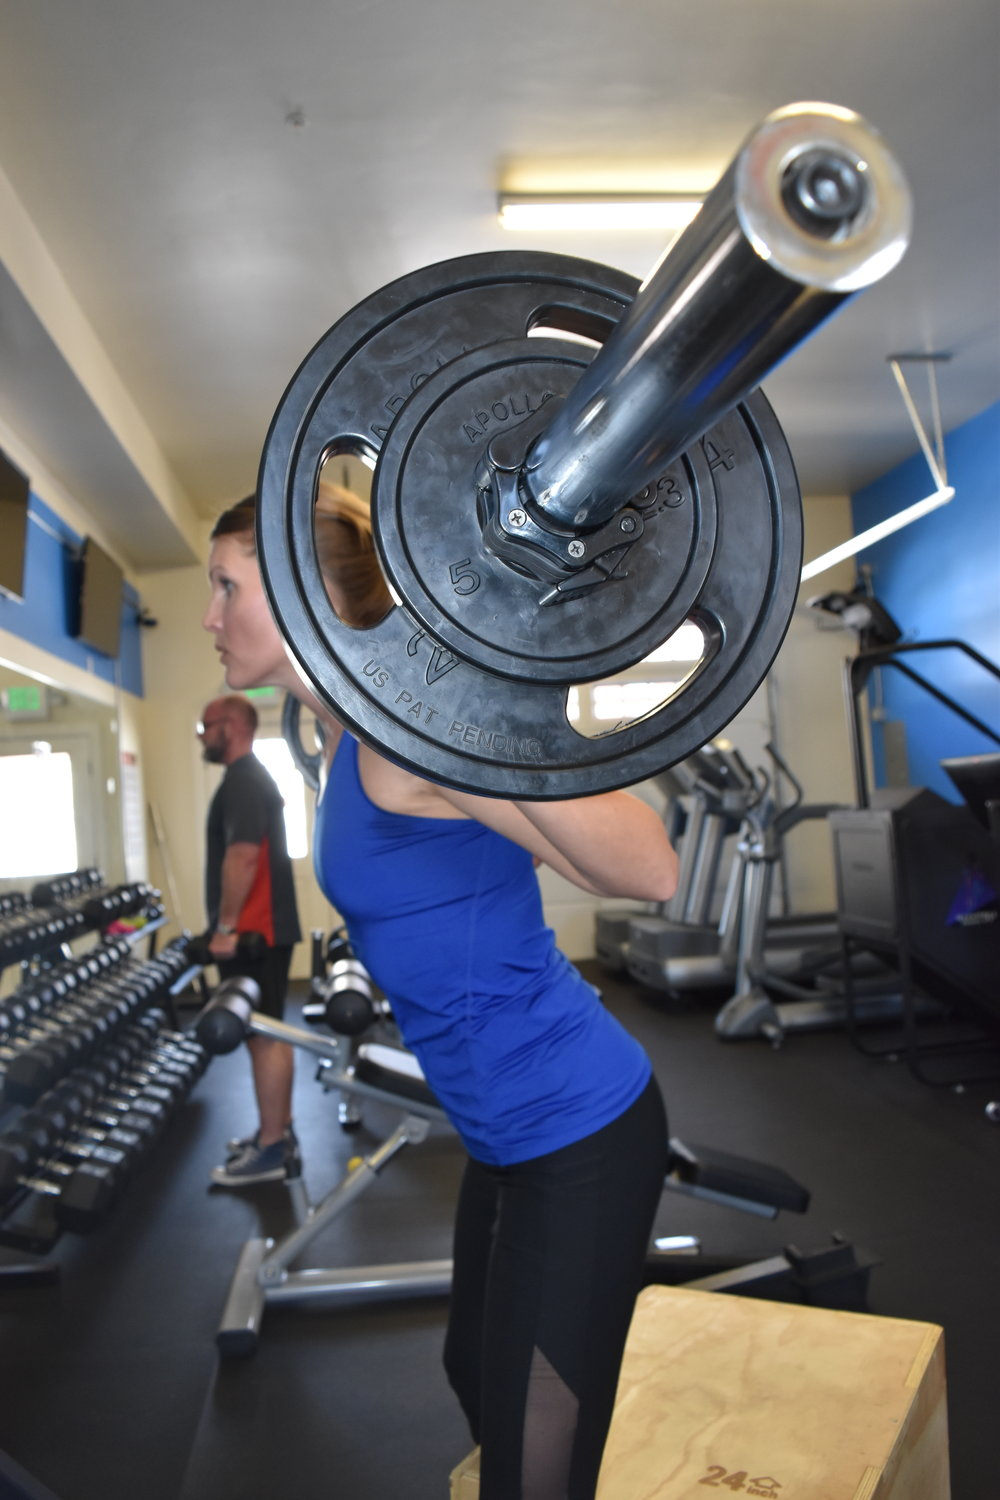 kristin weight training squats exercise lifting crested butte gym.JPG